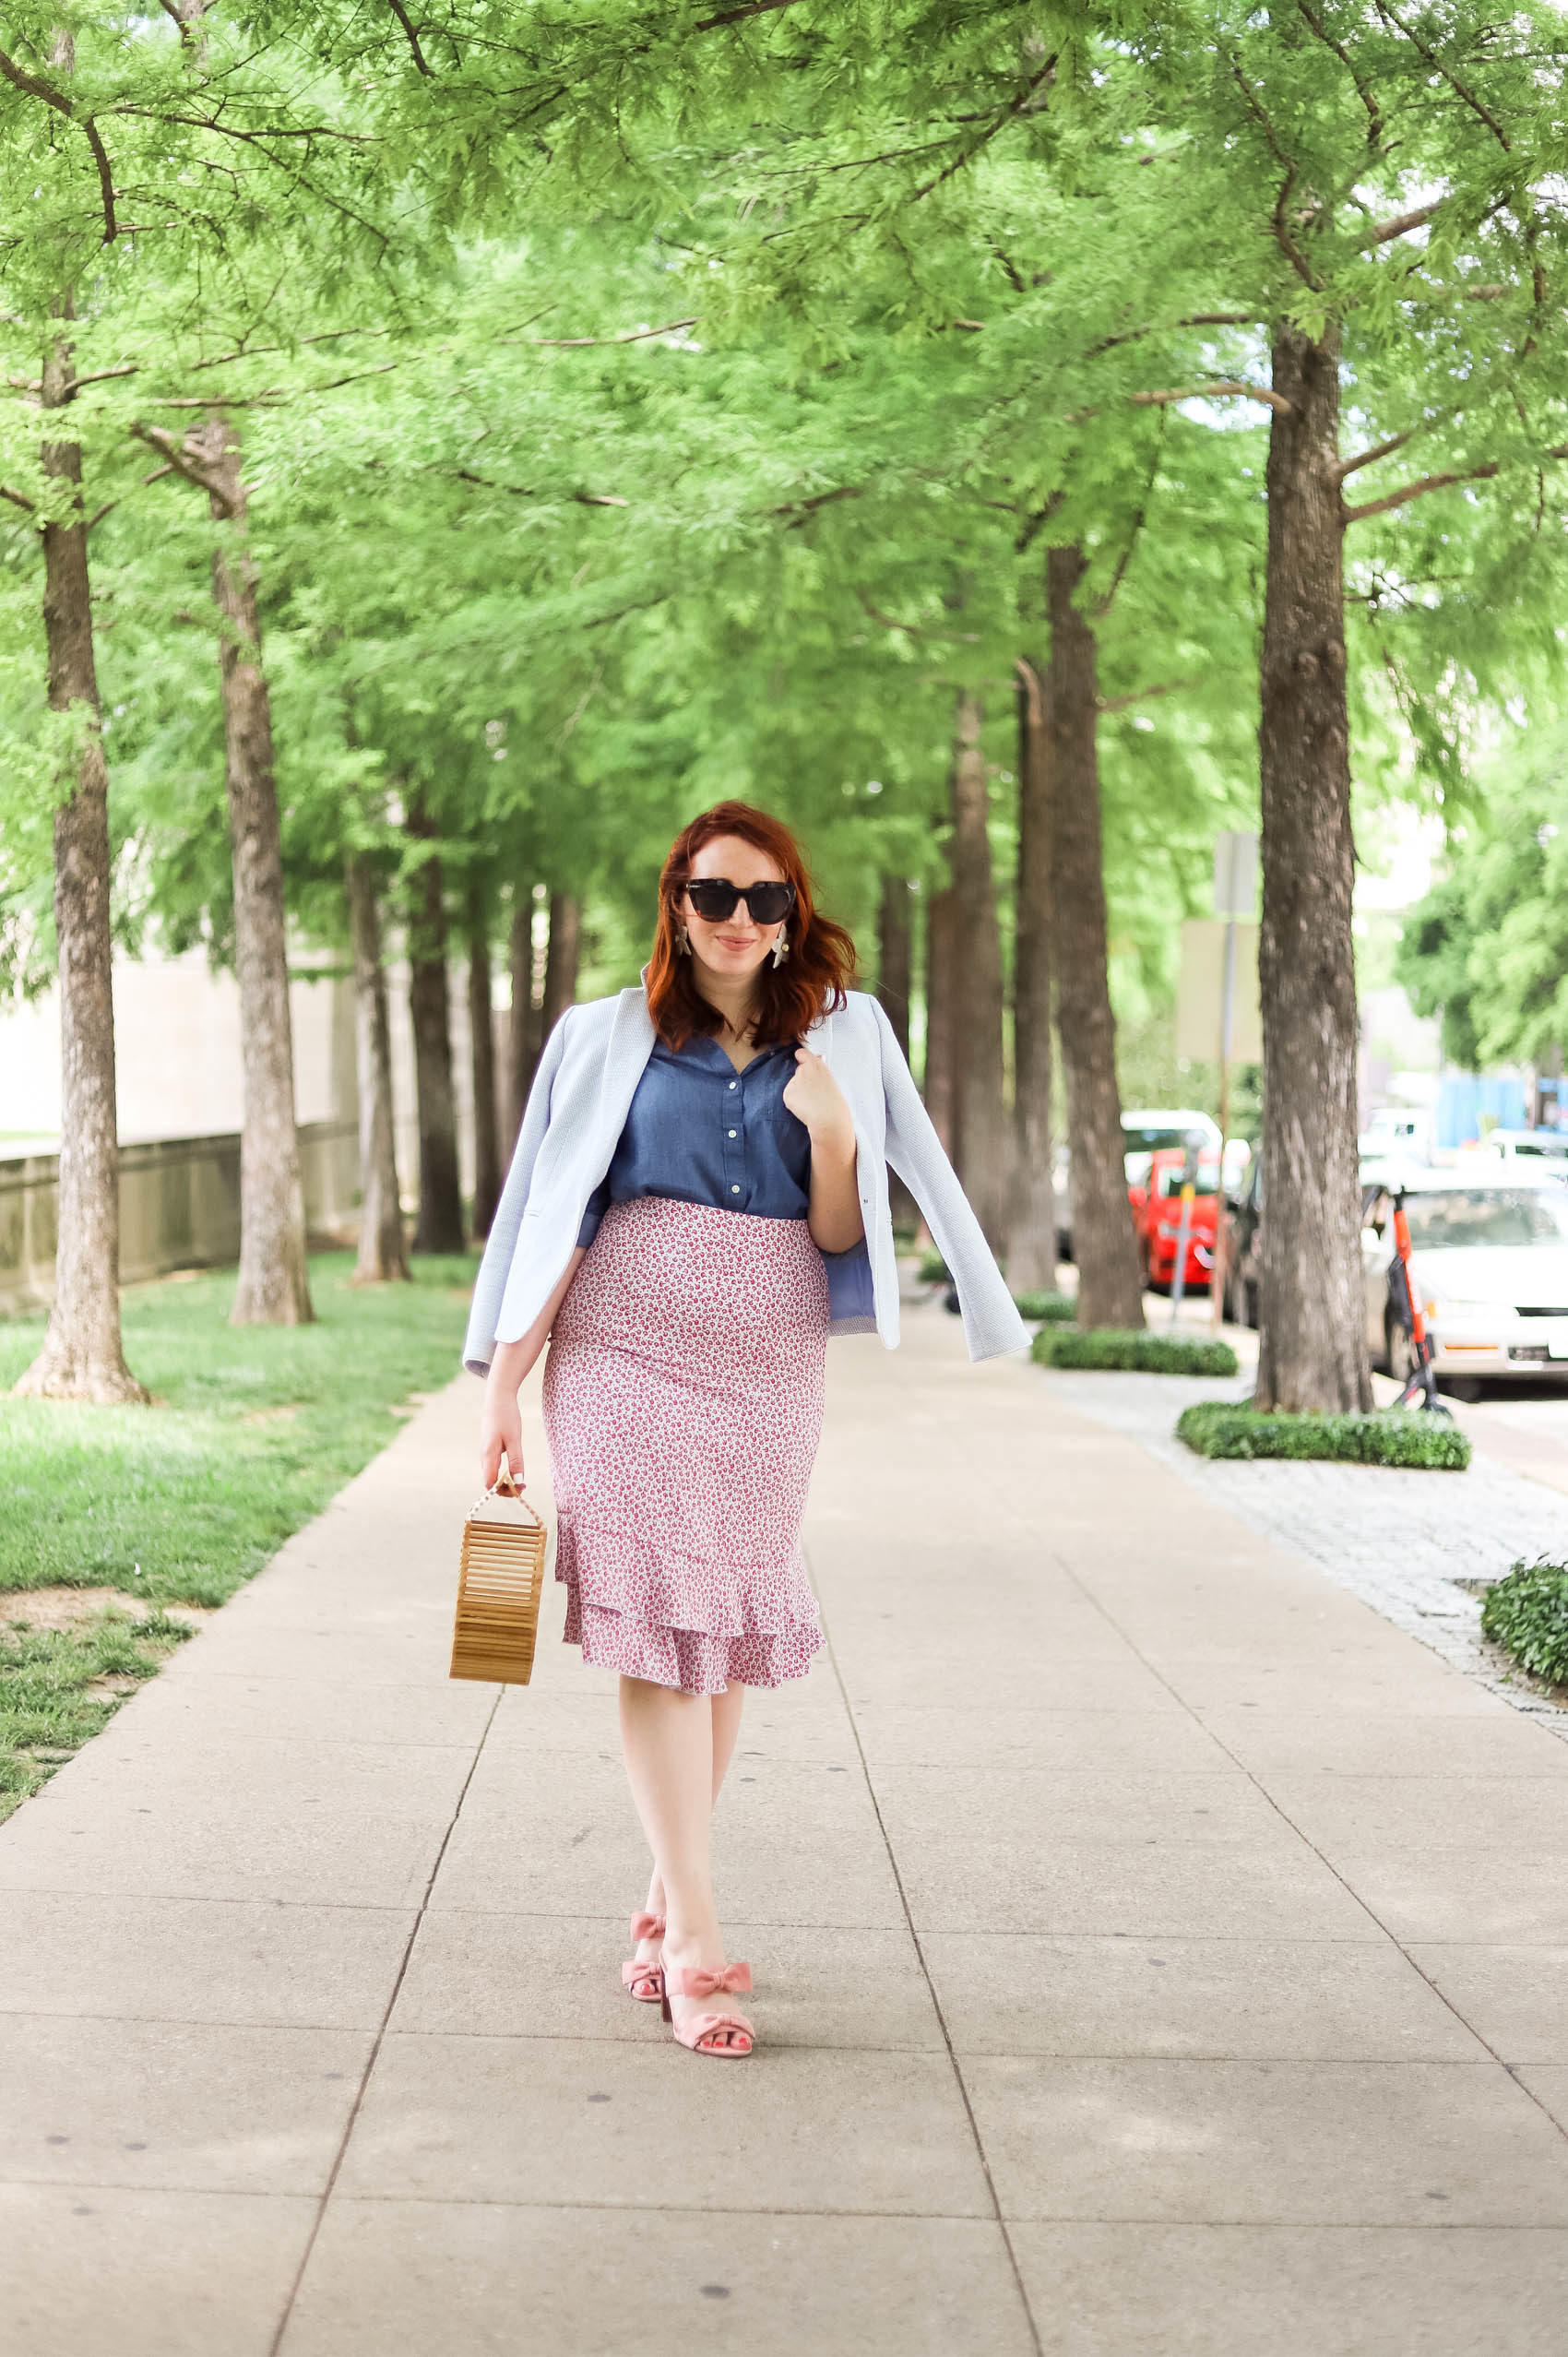 Ann Taylor Workwear | Summer Work Style | Summer Work Clothes Ann Taylor | How to Style a Blazer | How to Wear a Blazer | Fourth of July Outfit | Business Casual Outfit #womensfashion #summerstyle #fourthofjuly #outfitideas #summersales #fourthofjulyoutfits #fashion #style